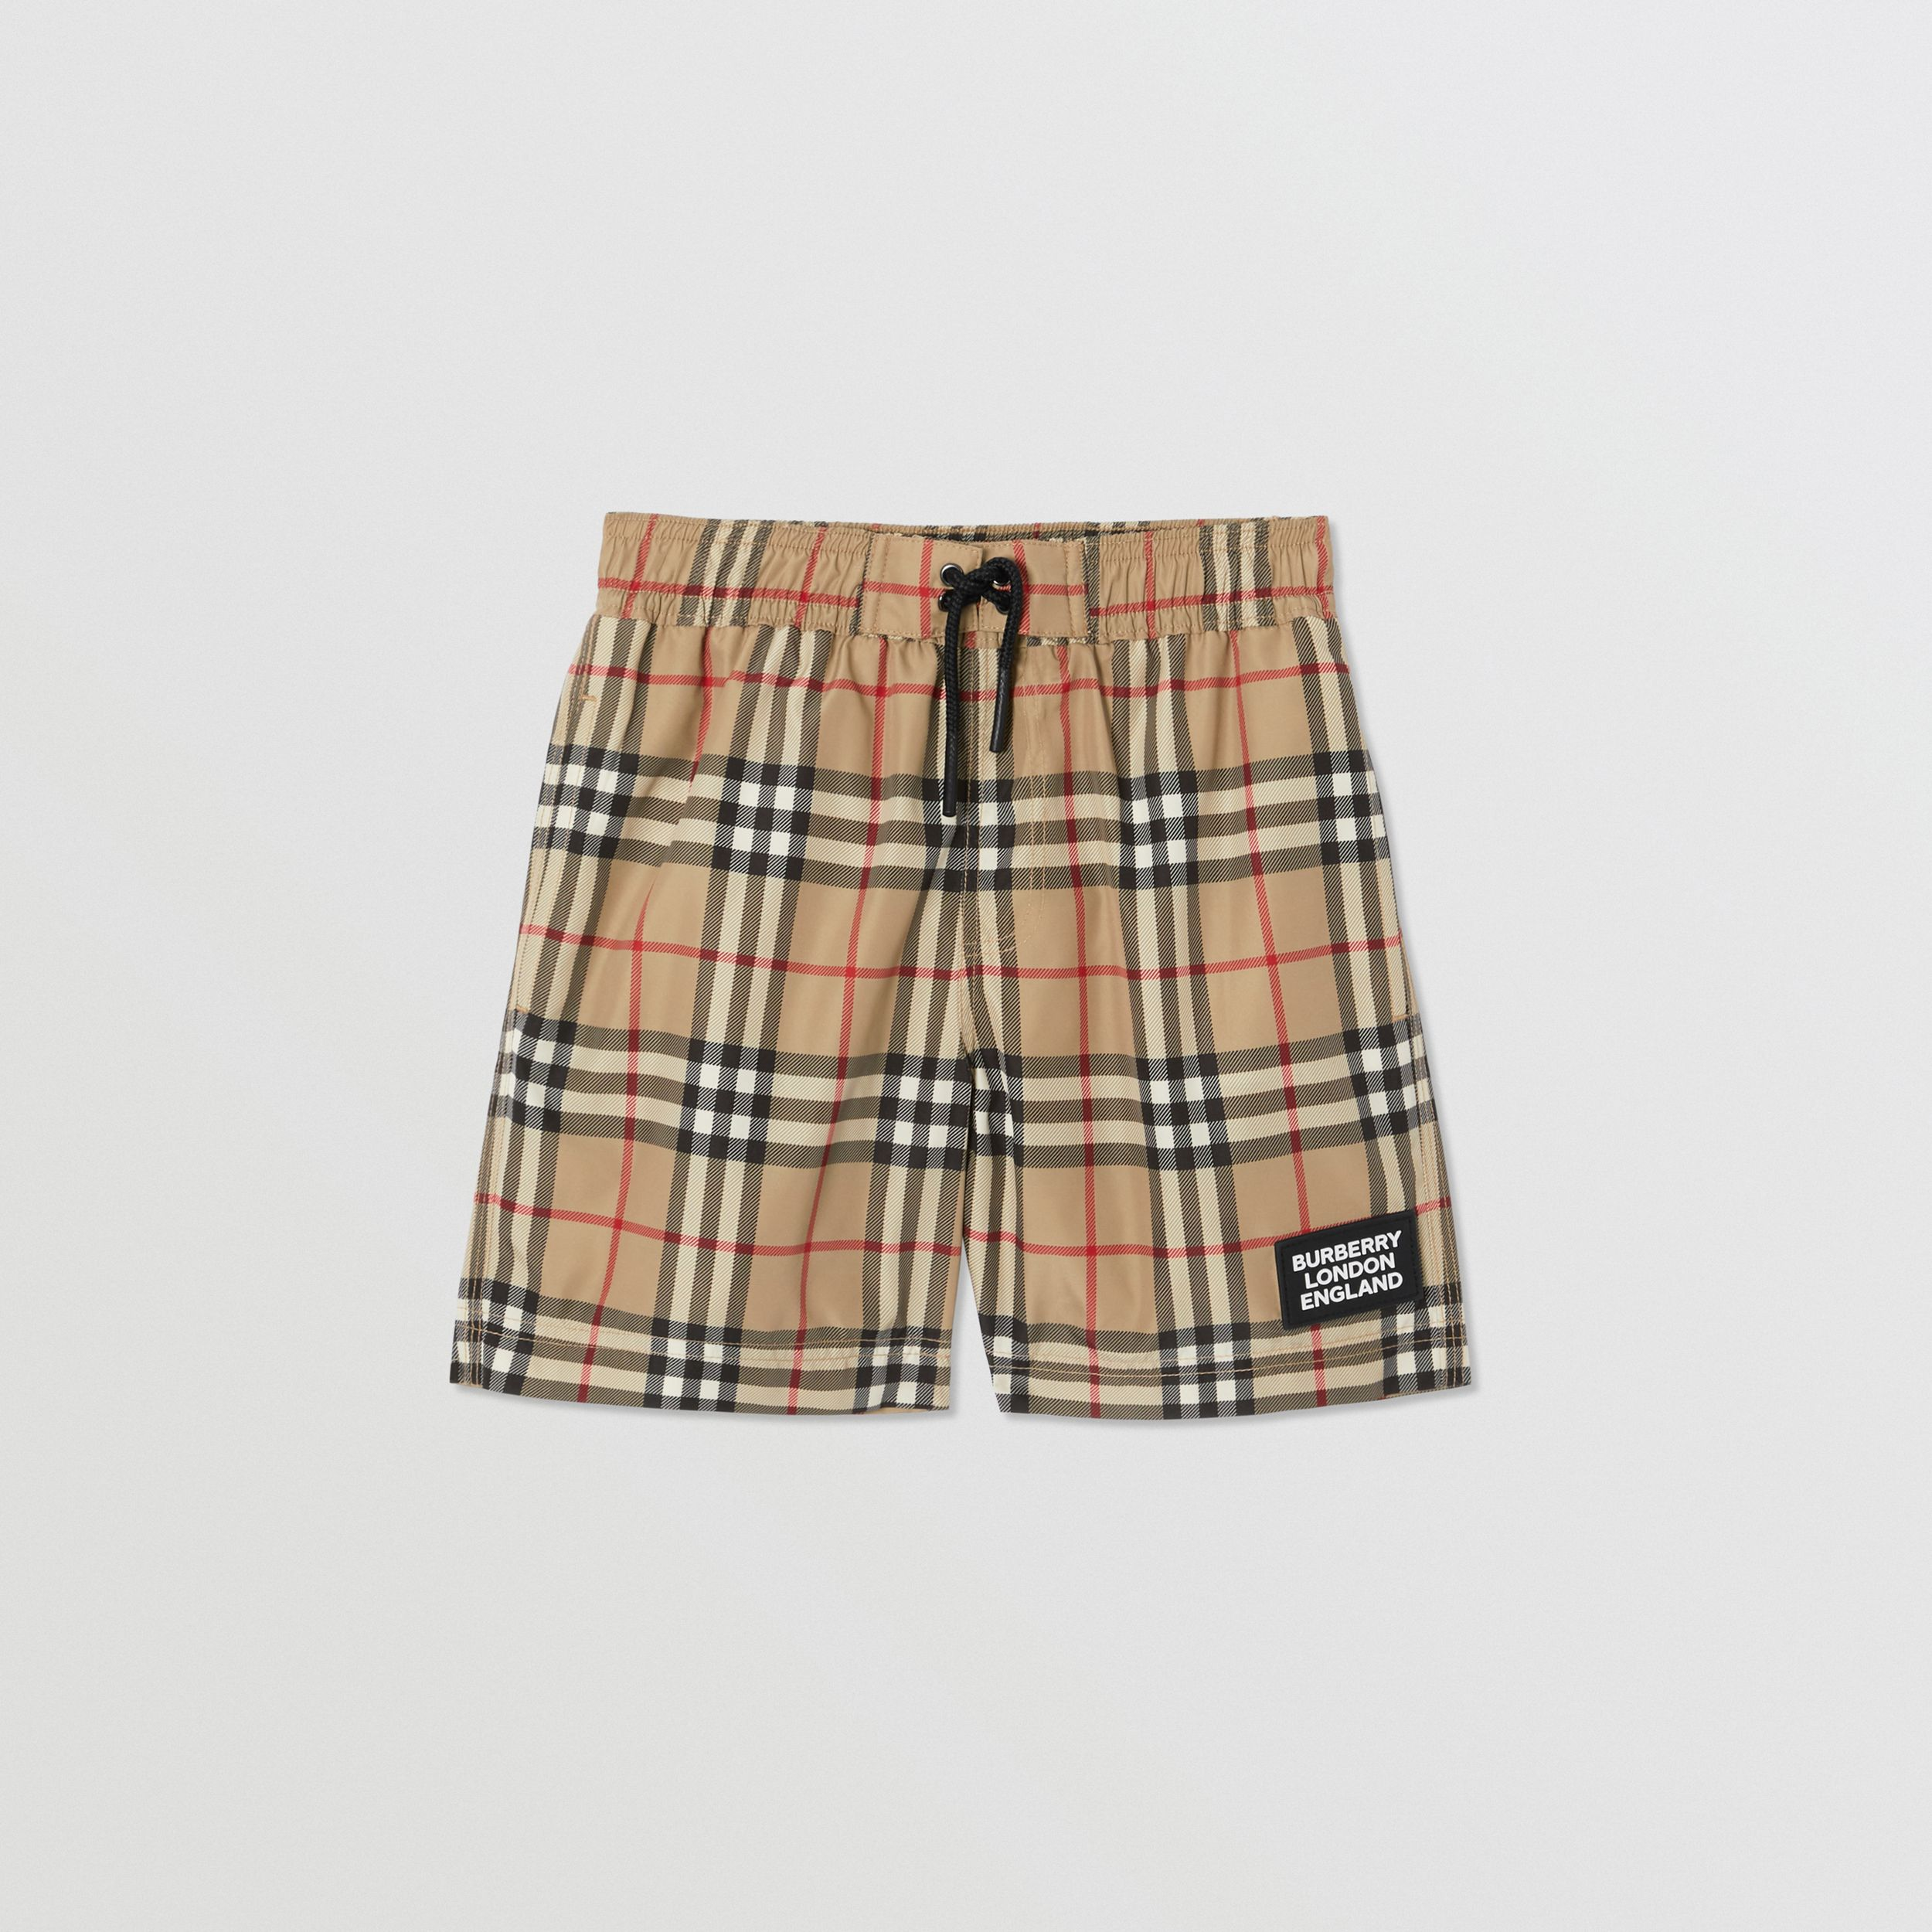 Logo Appliqué Vintage Check Swim Shorts in Archive Beige | Burberry - 1